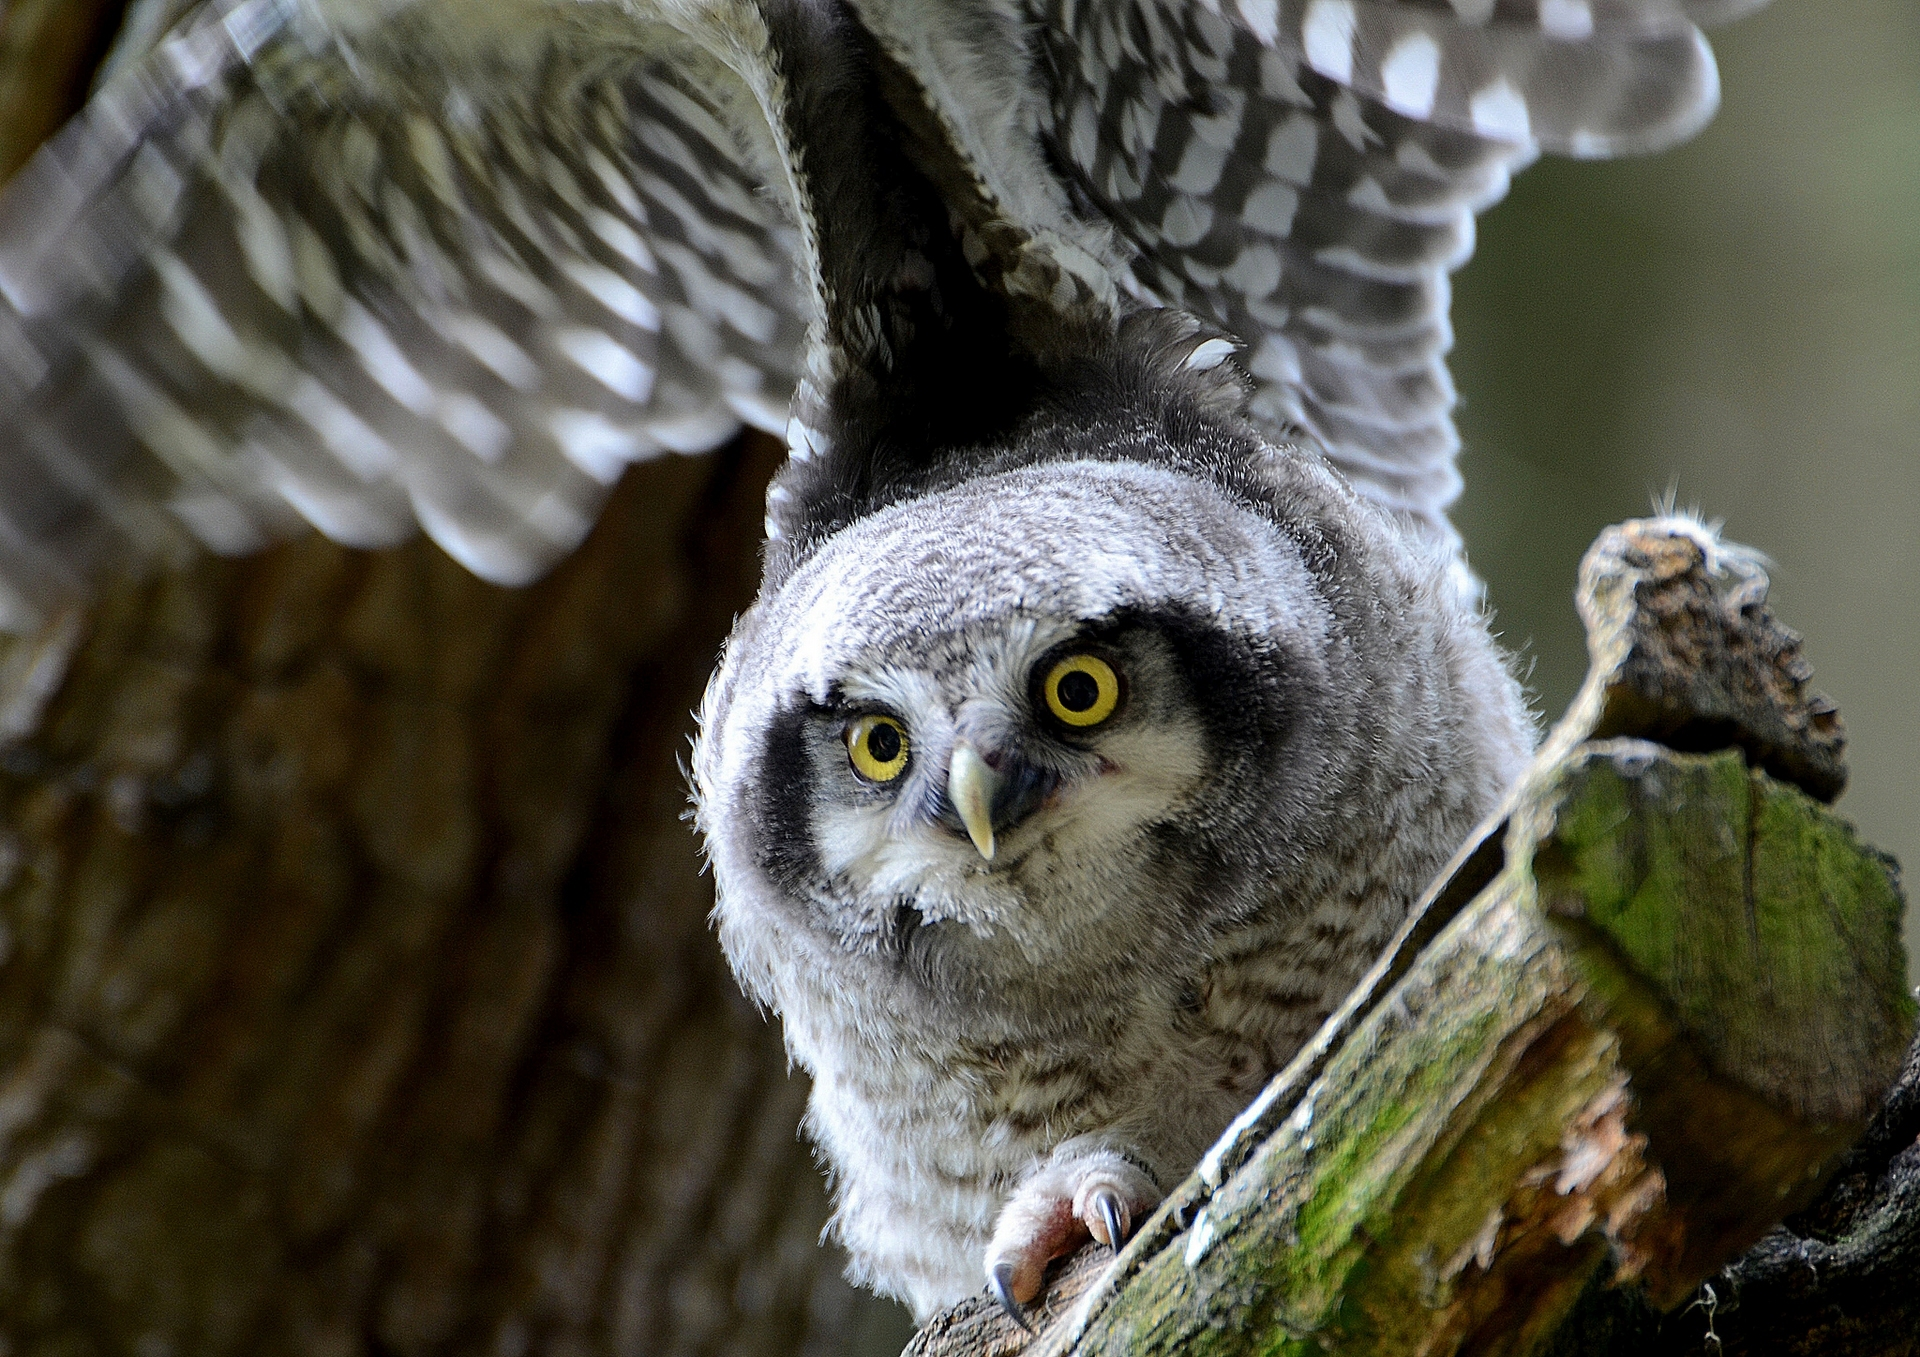 112497 Screensavers and Wallpapers Owl for phone. Download Animals, Hawk Owl, Owl, Predator, Sight, Opinion, Bird pictures for free